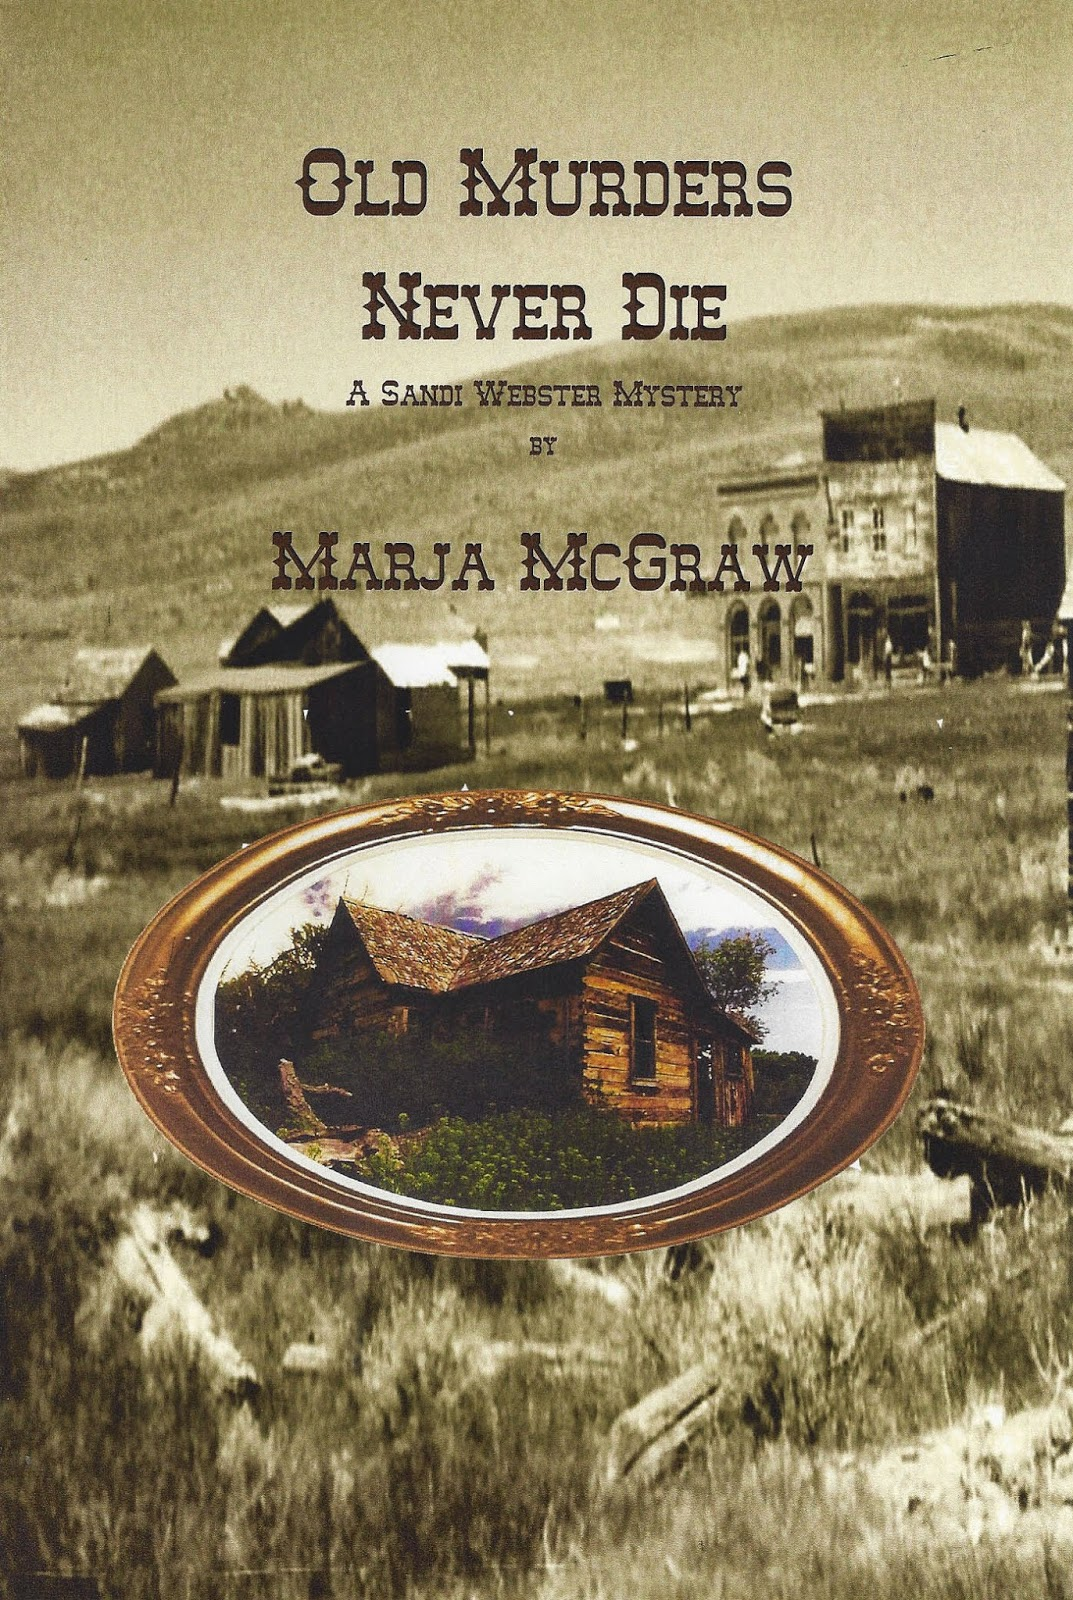 http://www.amazon.com/Murders-Never-Sandi-Webster-Mysteries-ebook/dp/B00DT6L6C8/ref=sr_1_9?s=books&ie=UTF8&qid=1413053635&sr=1-9&keywords=marja+mcgraw